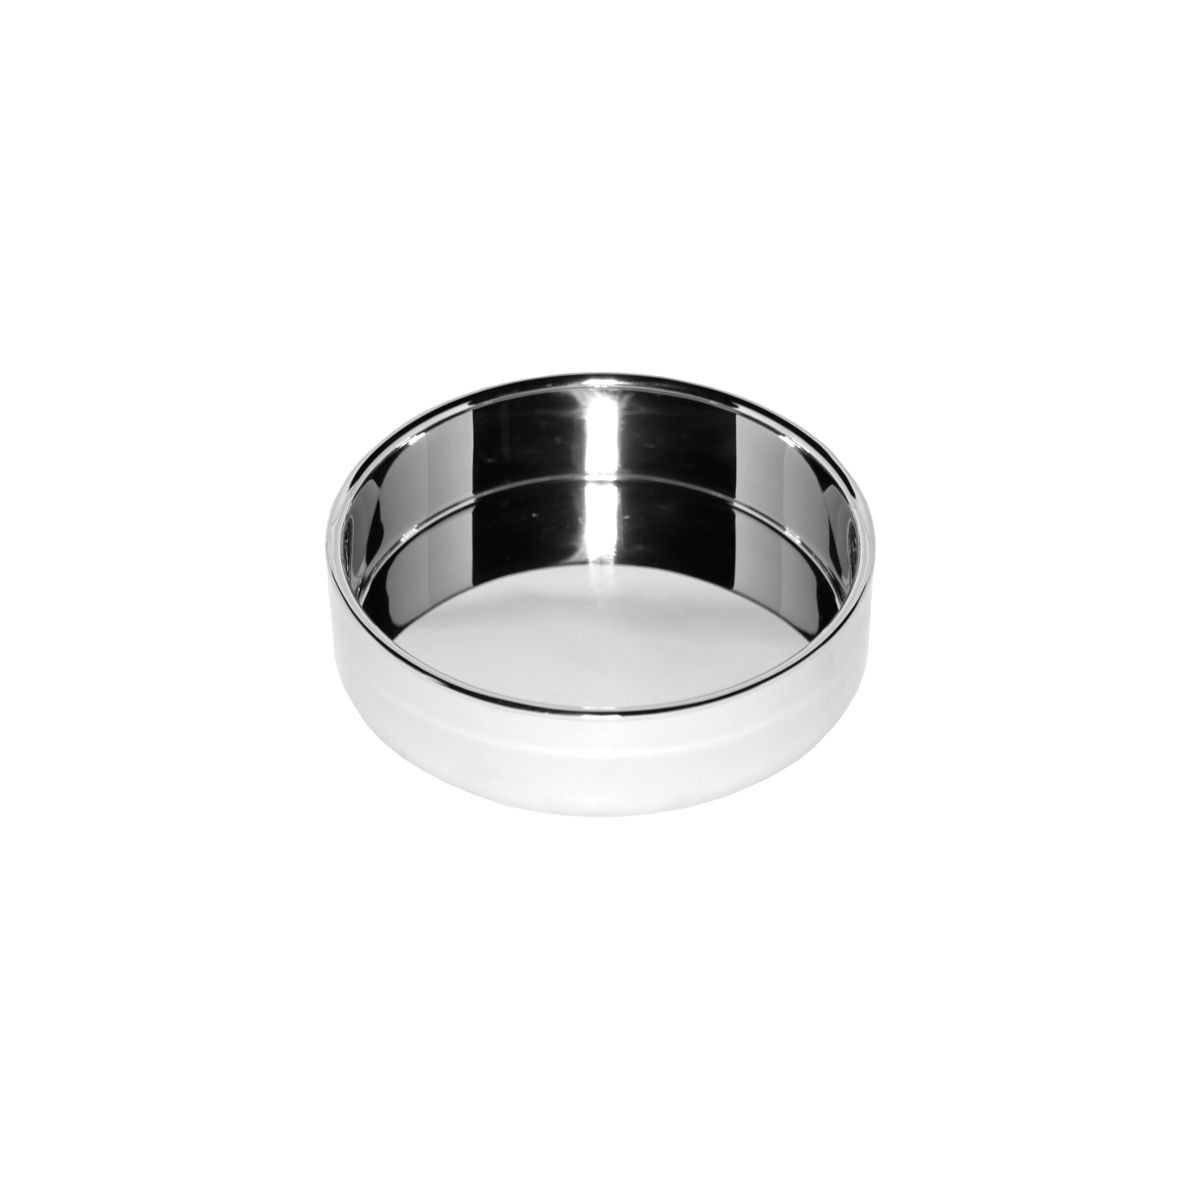 Service Ideas SM-44 SteelForme Stainless Steel Serving Bowl, 12 oz.